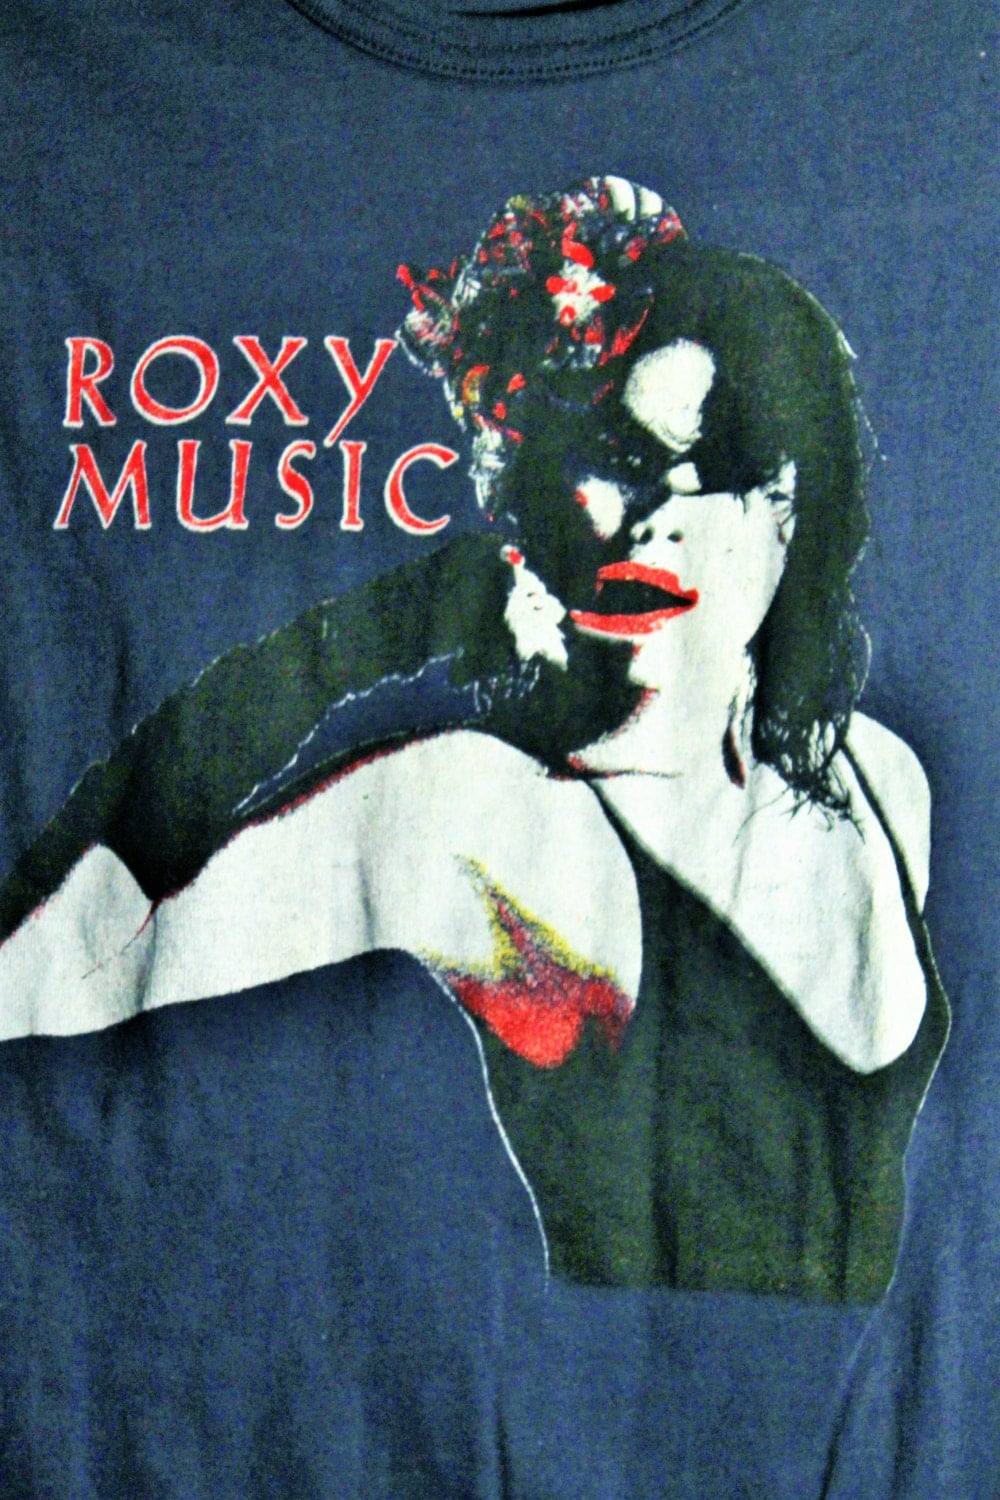 Roxy music the high road